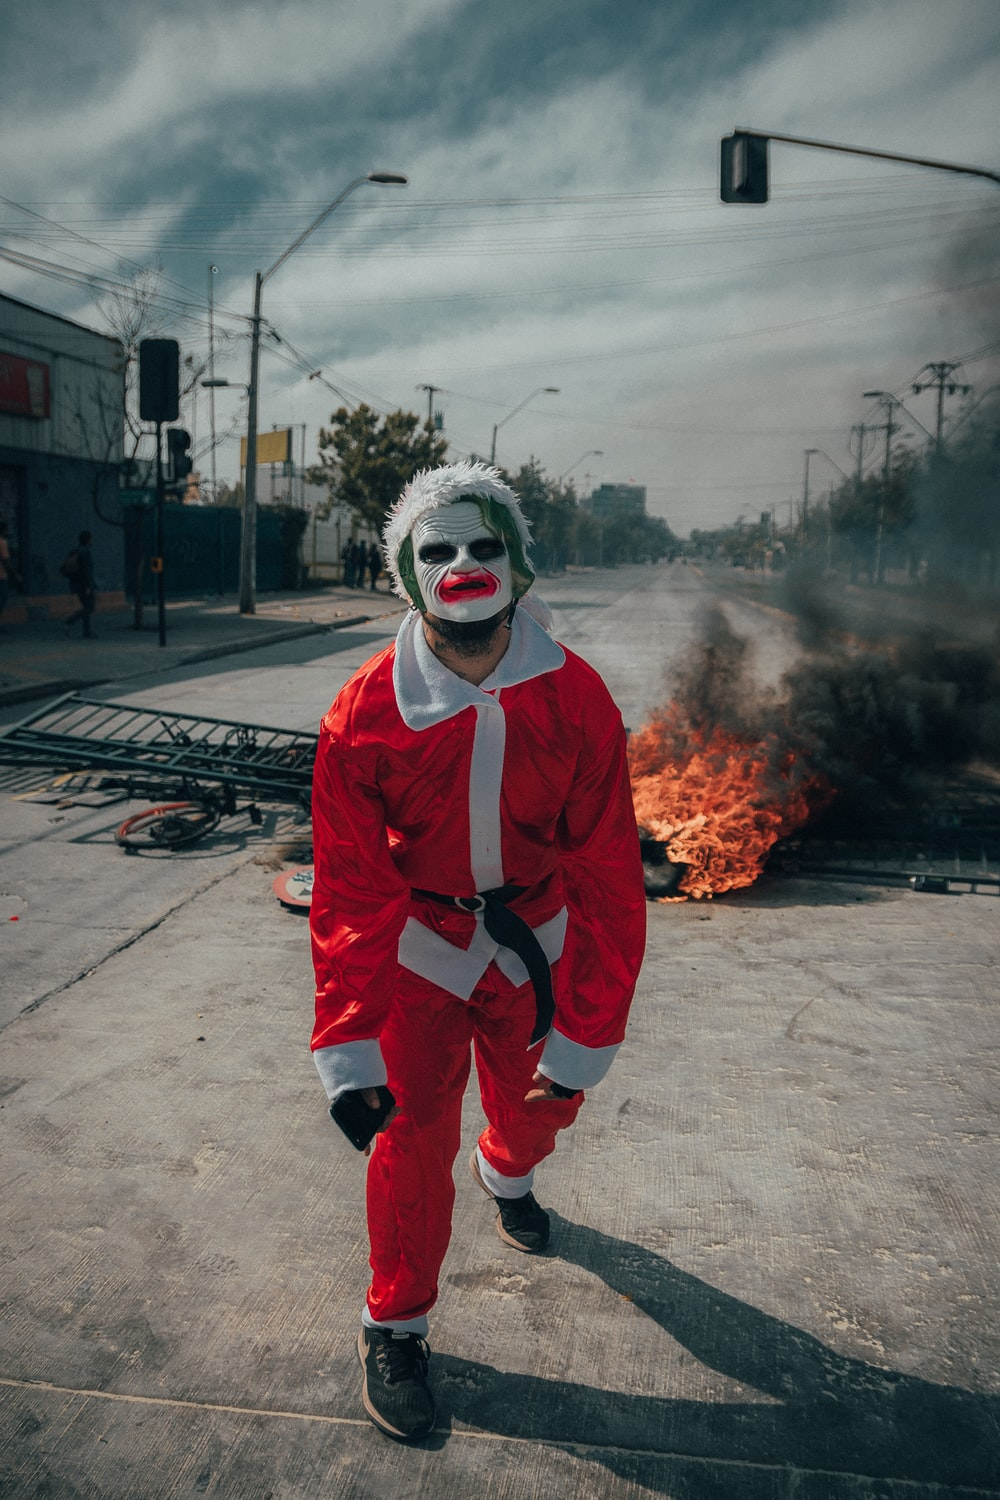 man wearing Santa's costume near burning object